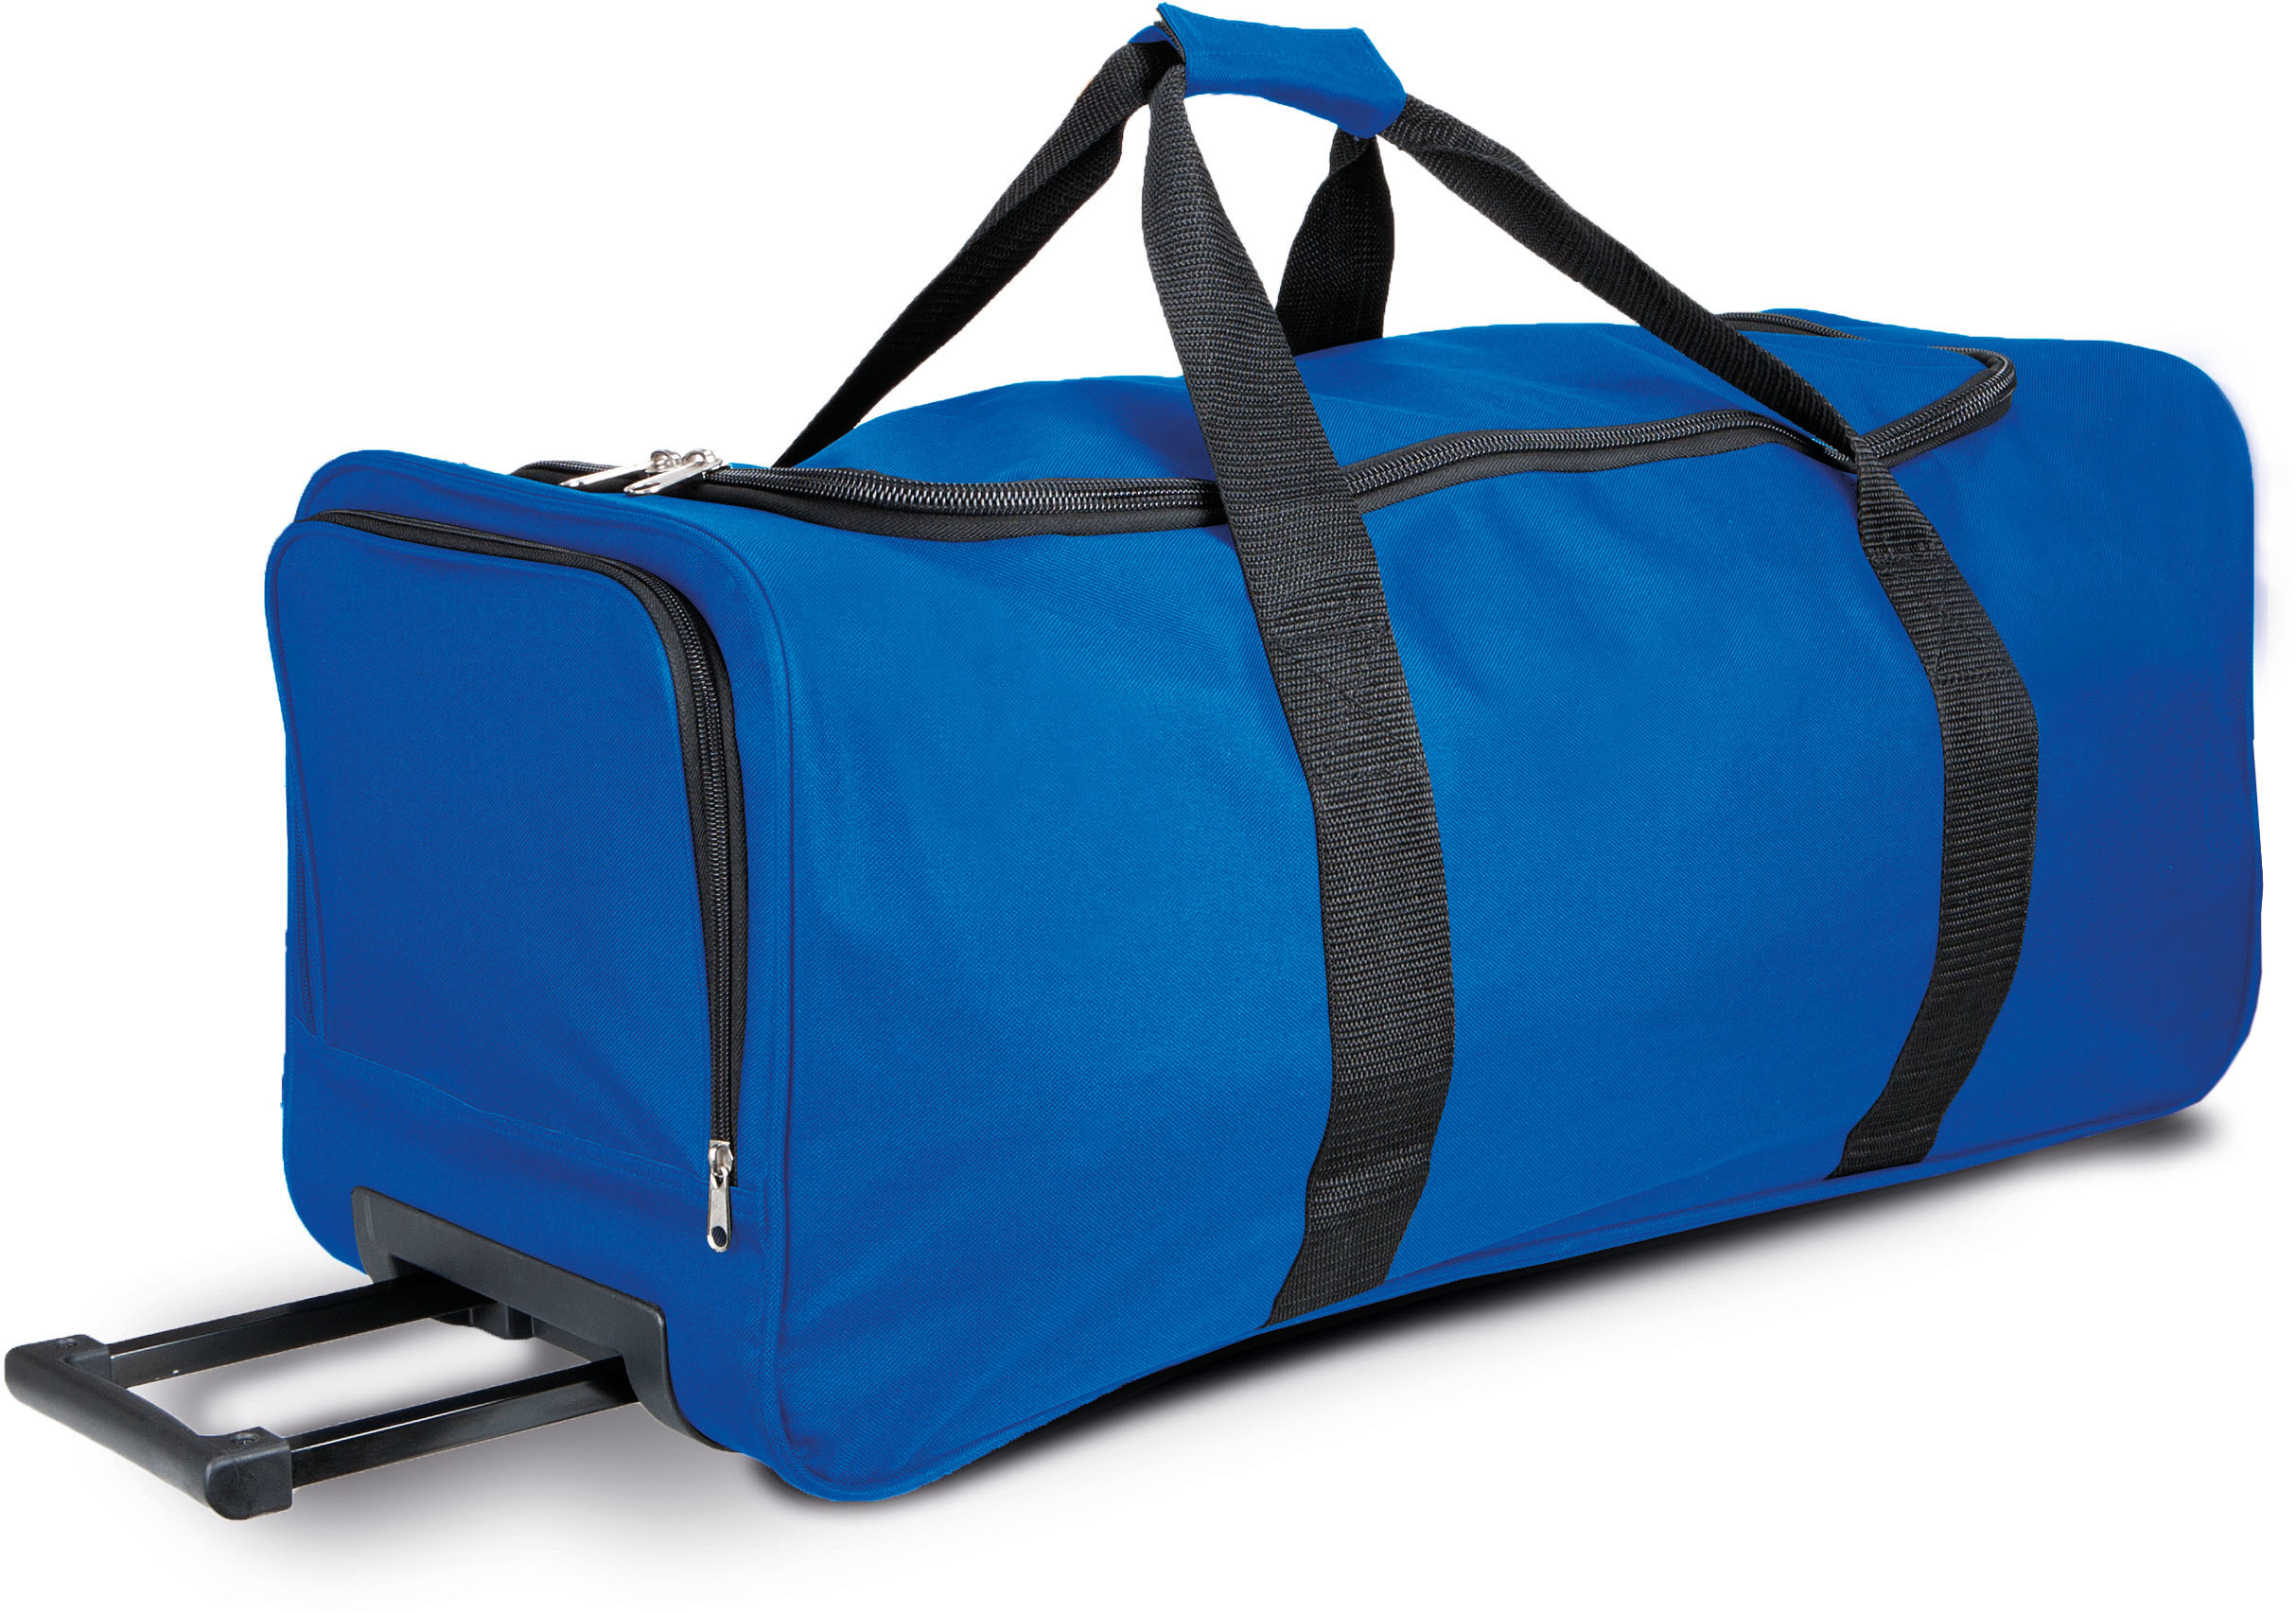 Sac de sport/trolley - 2-1614-5